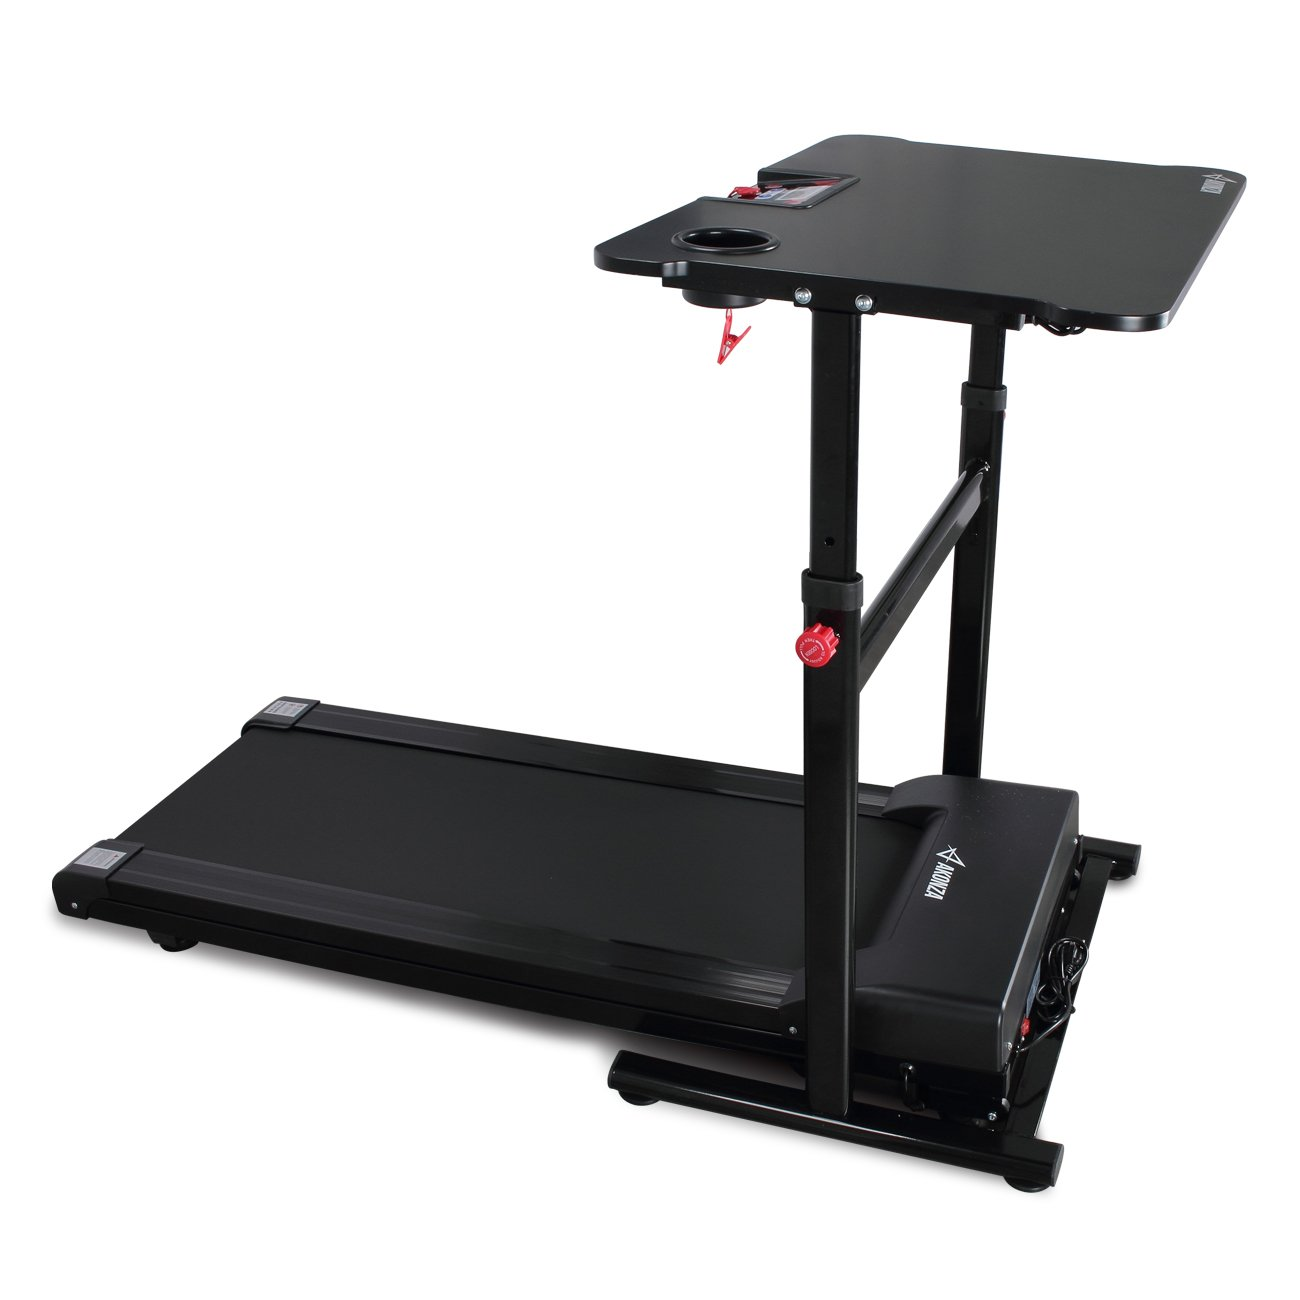 Beau Amazon.com : Akonza Electric Standing Walking Treadmill Desk Workstation  W/Tabletop Adjustable Height For Home U0026 Office W/Cup Holder : Sports U0026  Outdoors